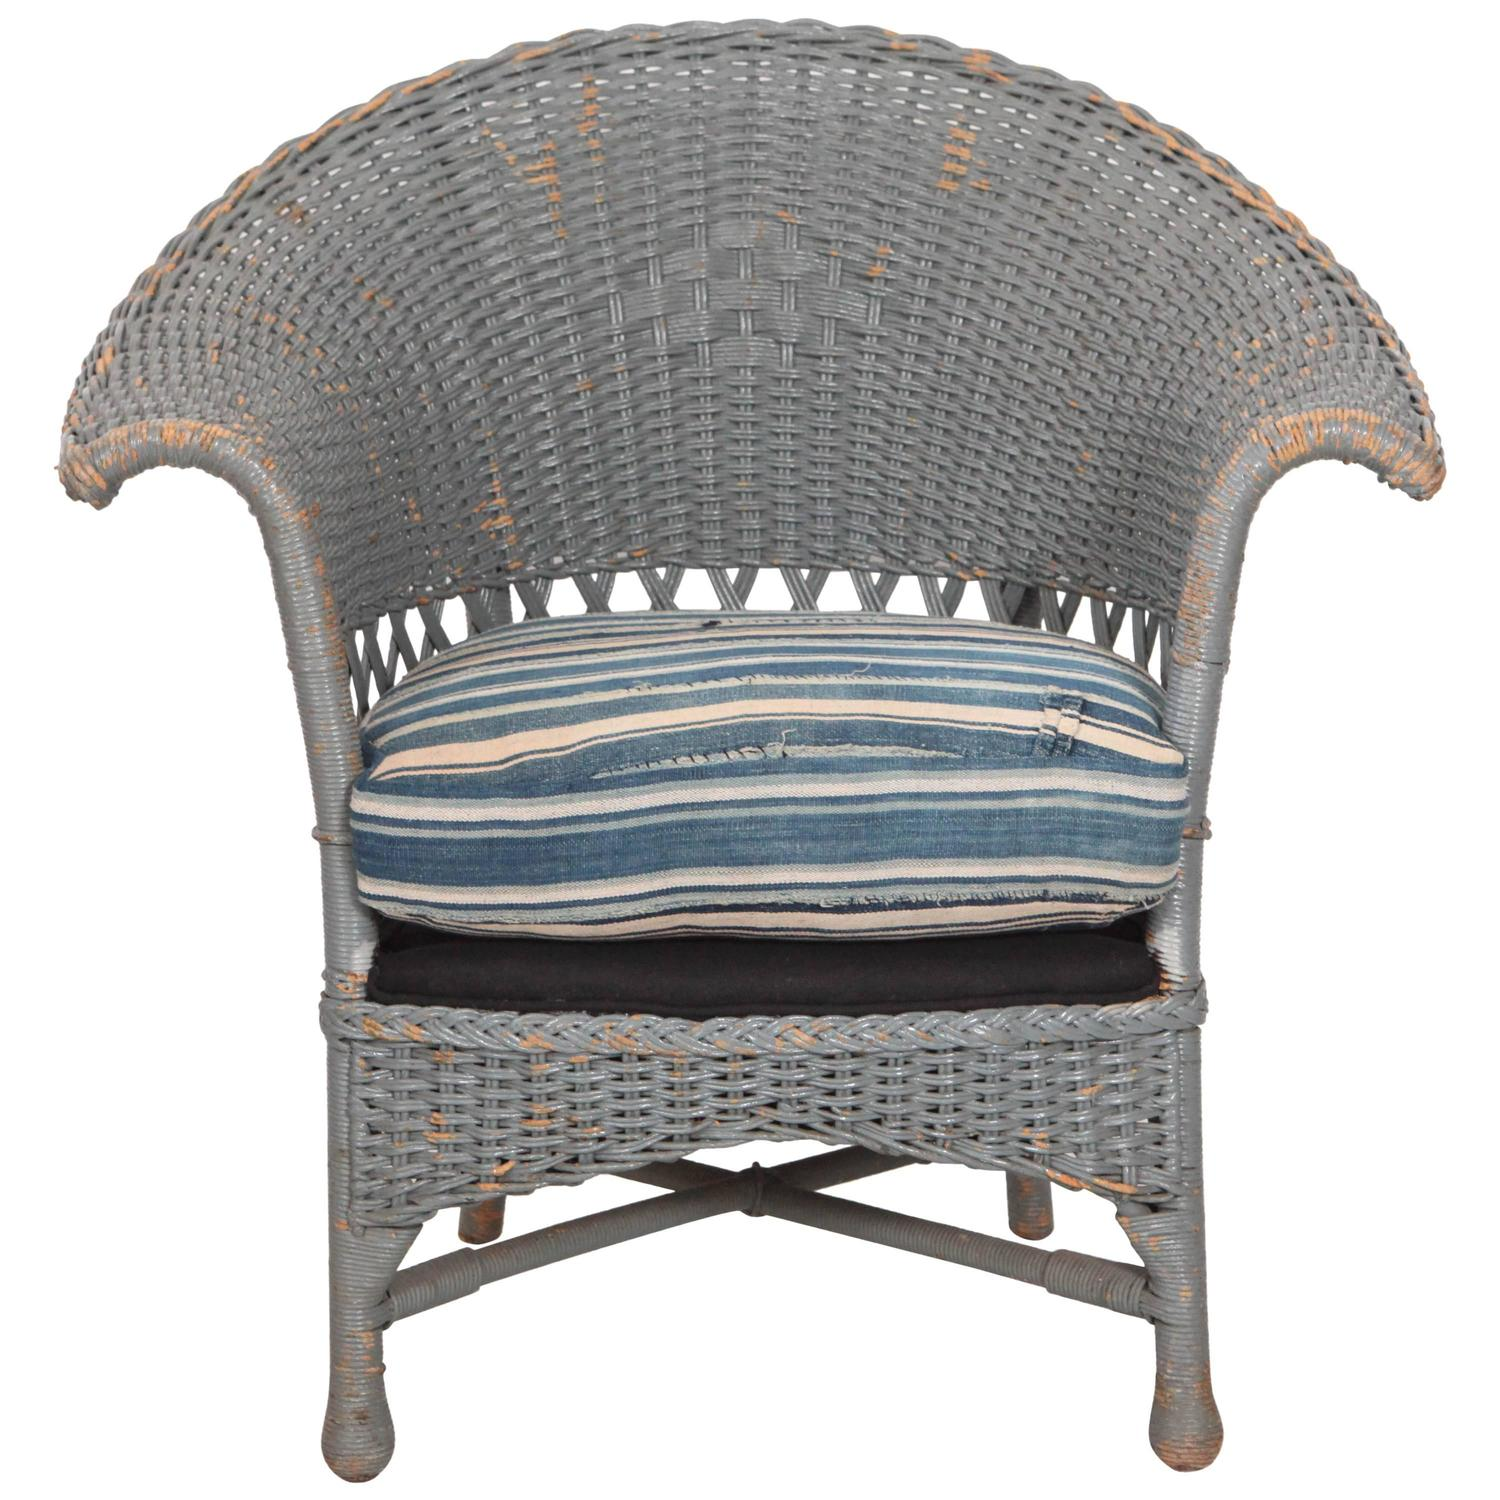 Bon Vintage Wicker Veranda Chair With African Mudcloth Cushion For Sale At  1stdibs